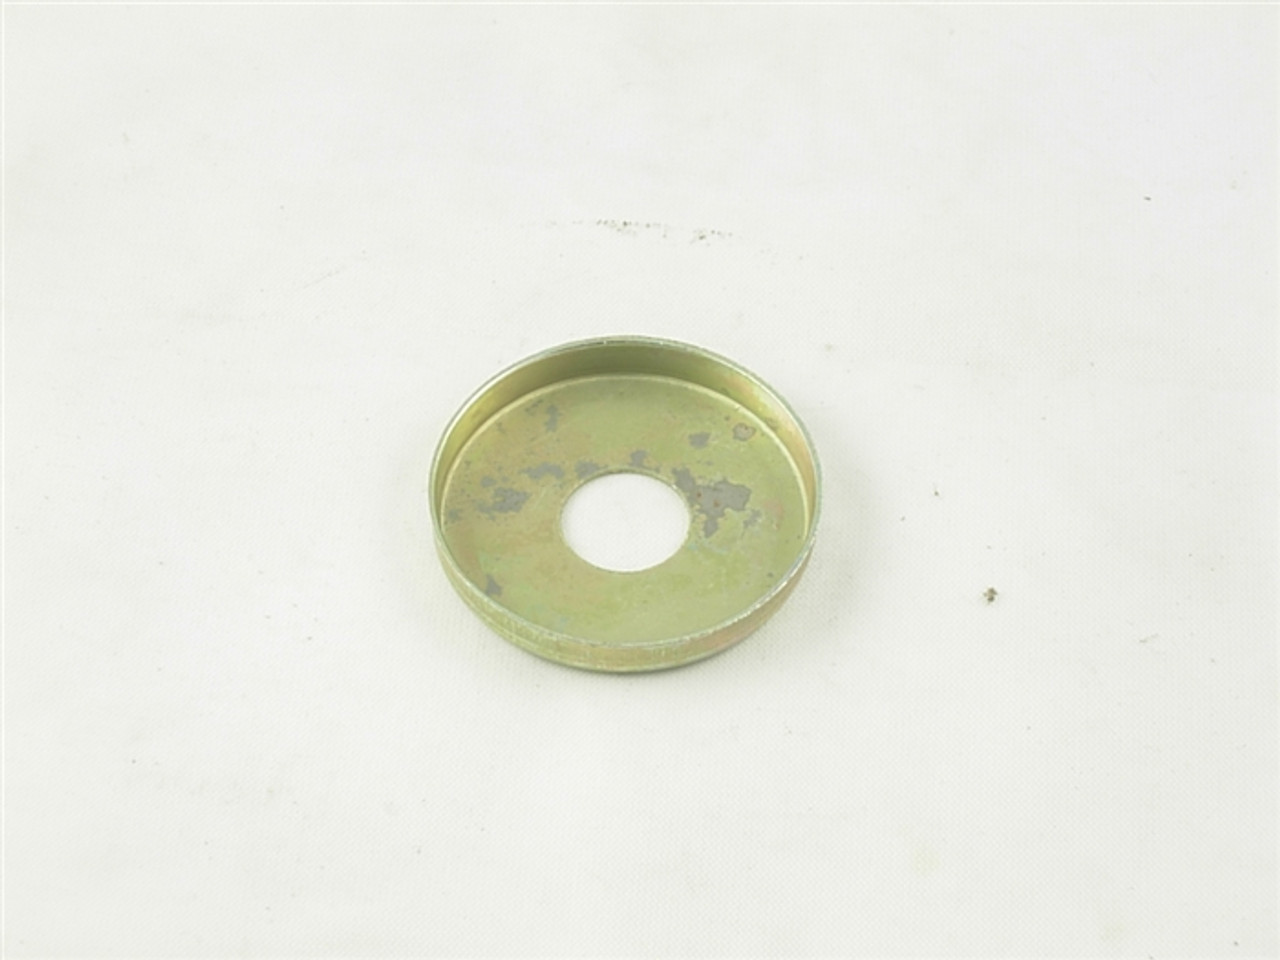 FLANGE WASHER 10335-A19-11